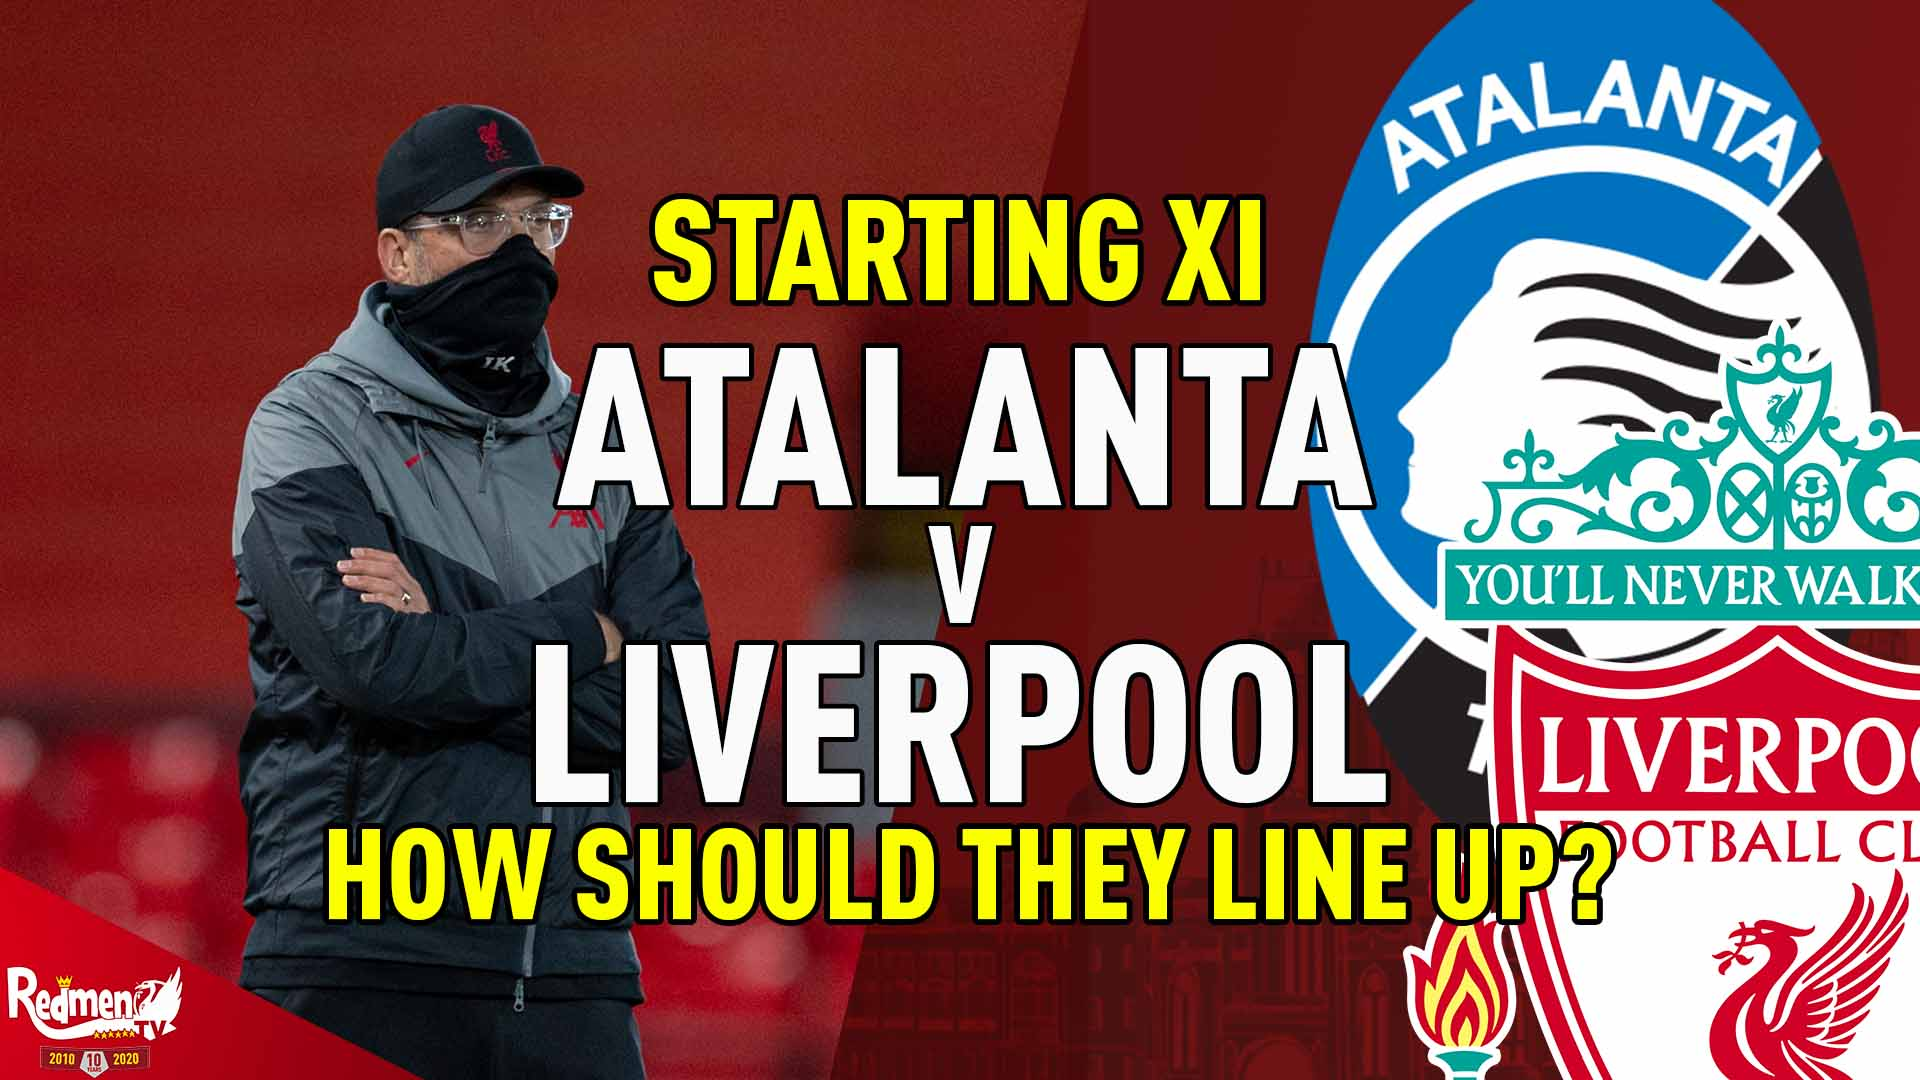 starting xi how should liverpool line up against atalanta the redmen tv starting xi how should liverpool line